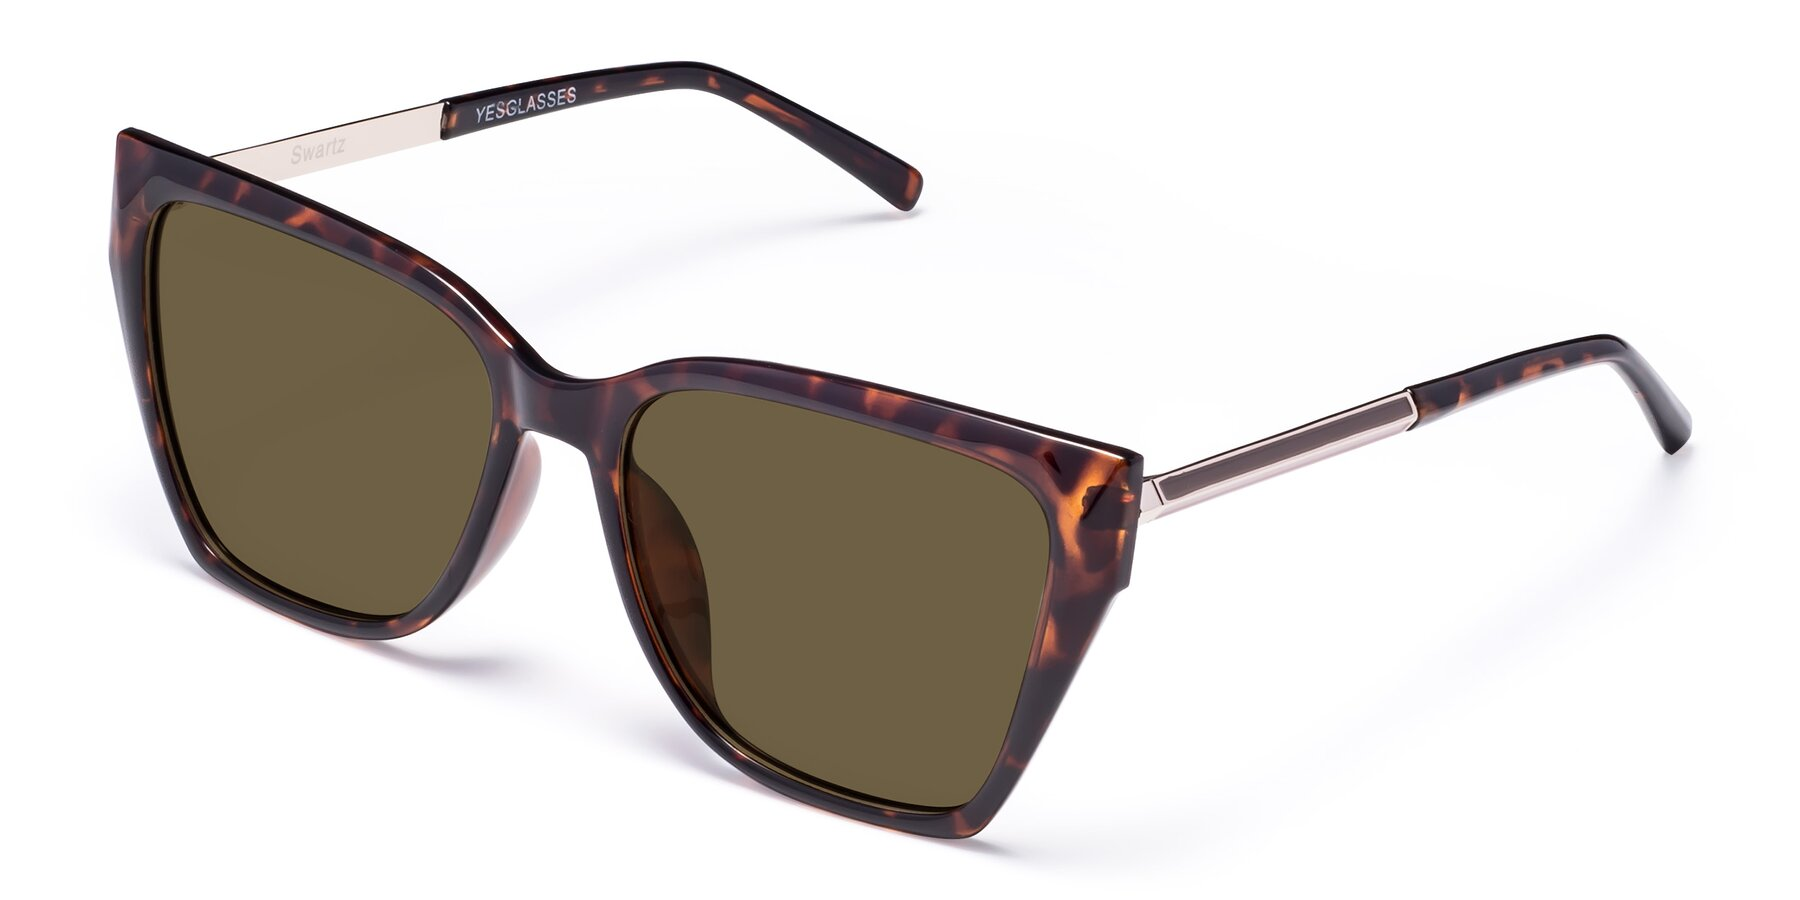 Angle of Swartz in Tortoise with Brown Polarized Lenses